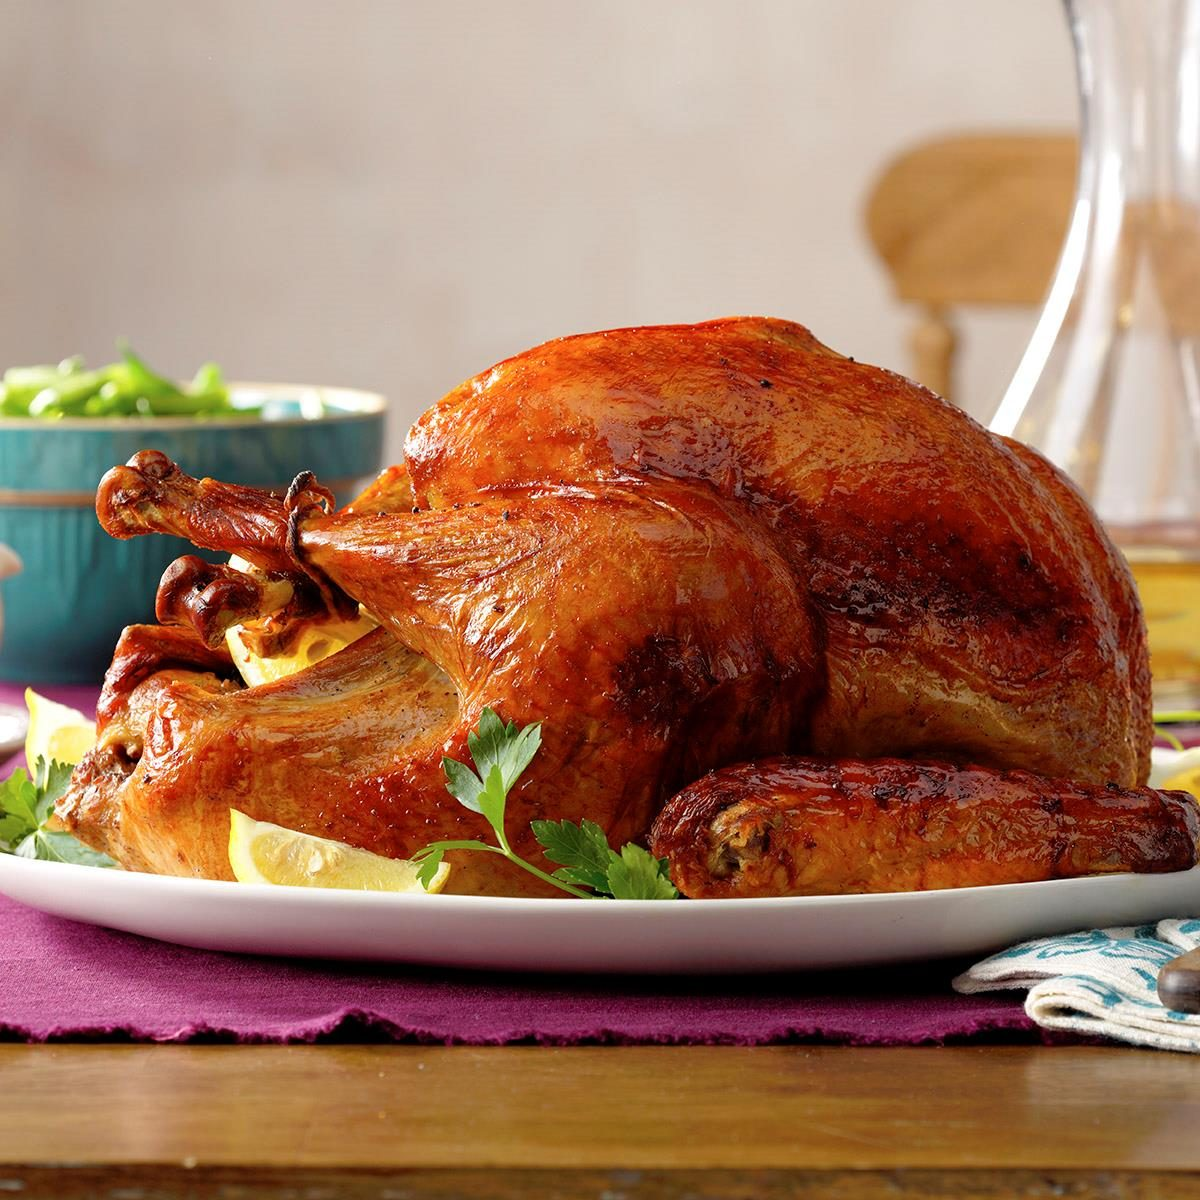 10 Tips for Buying the Perfect Turkey This Thanksgiving